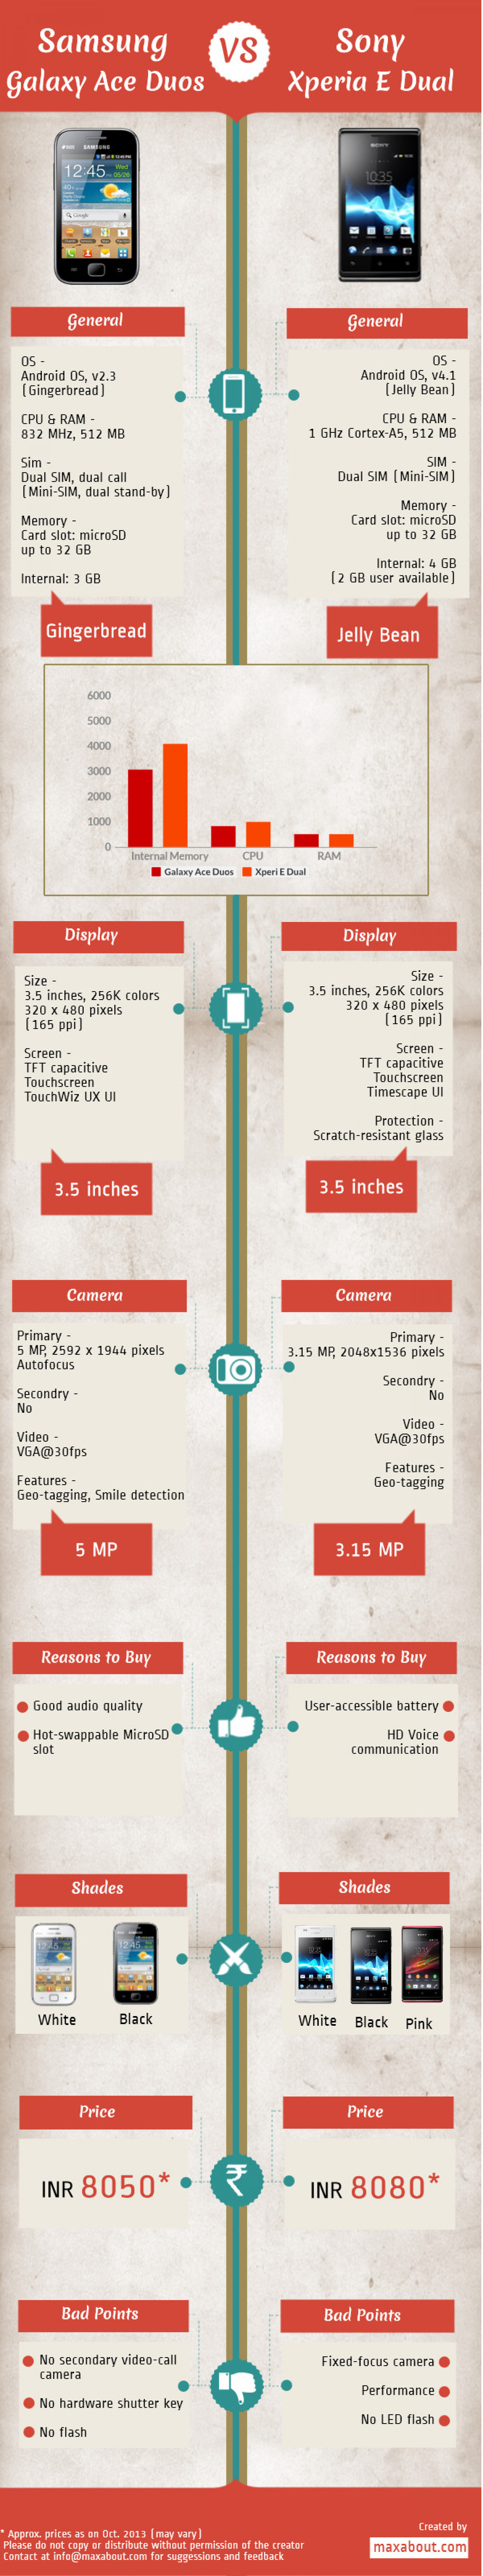 Samsung Galaxy Ace Duos vs. Sony Xperia E Dual Infographic